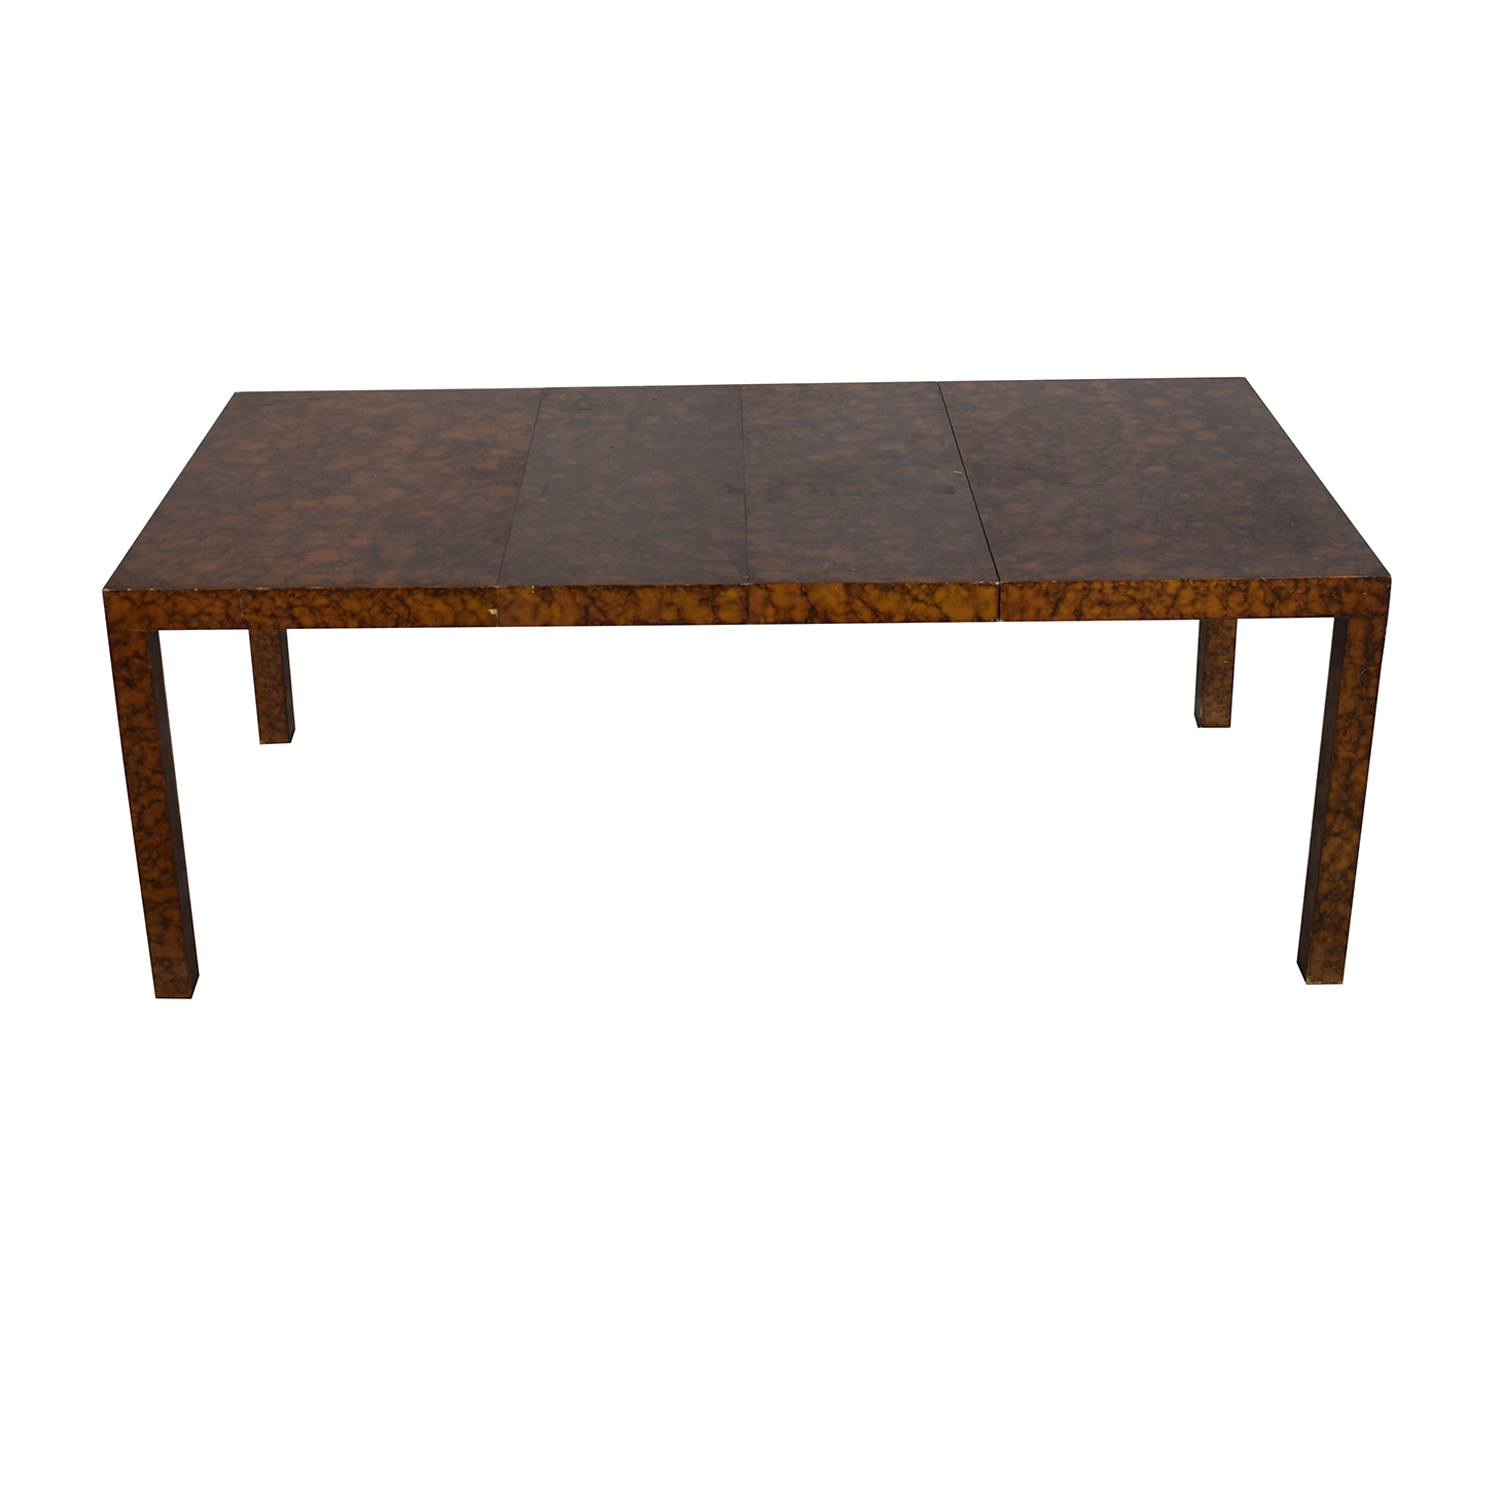 Directional Furniture Directional Furniture Milo Baughman Burl Parsons Dining Table nyc